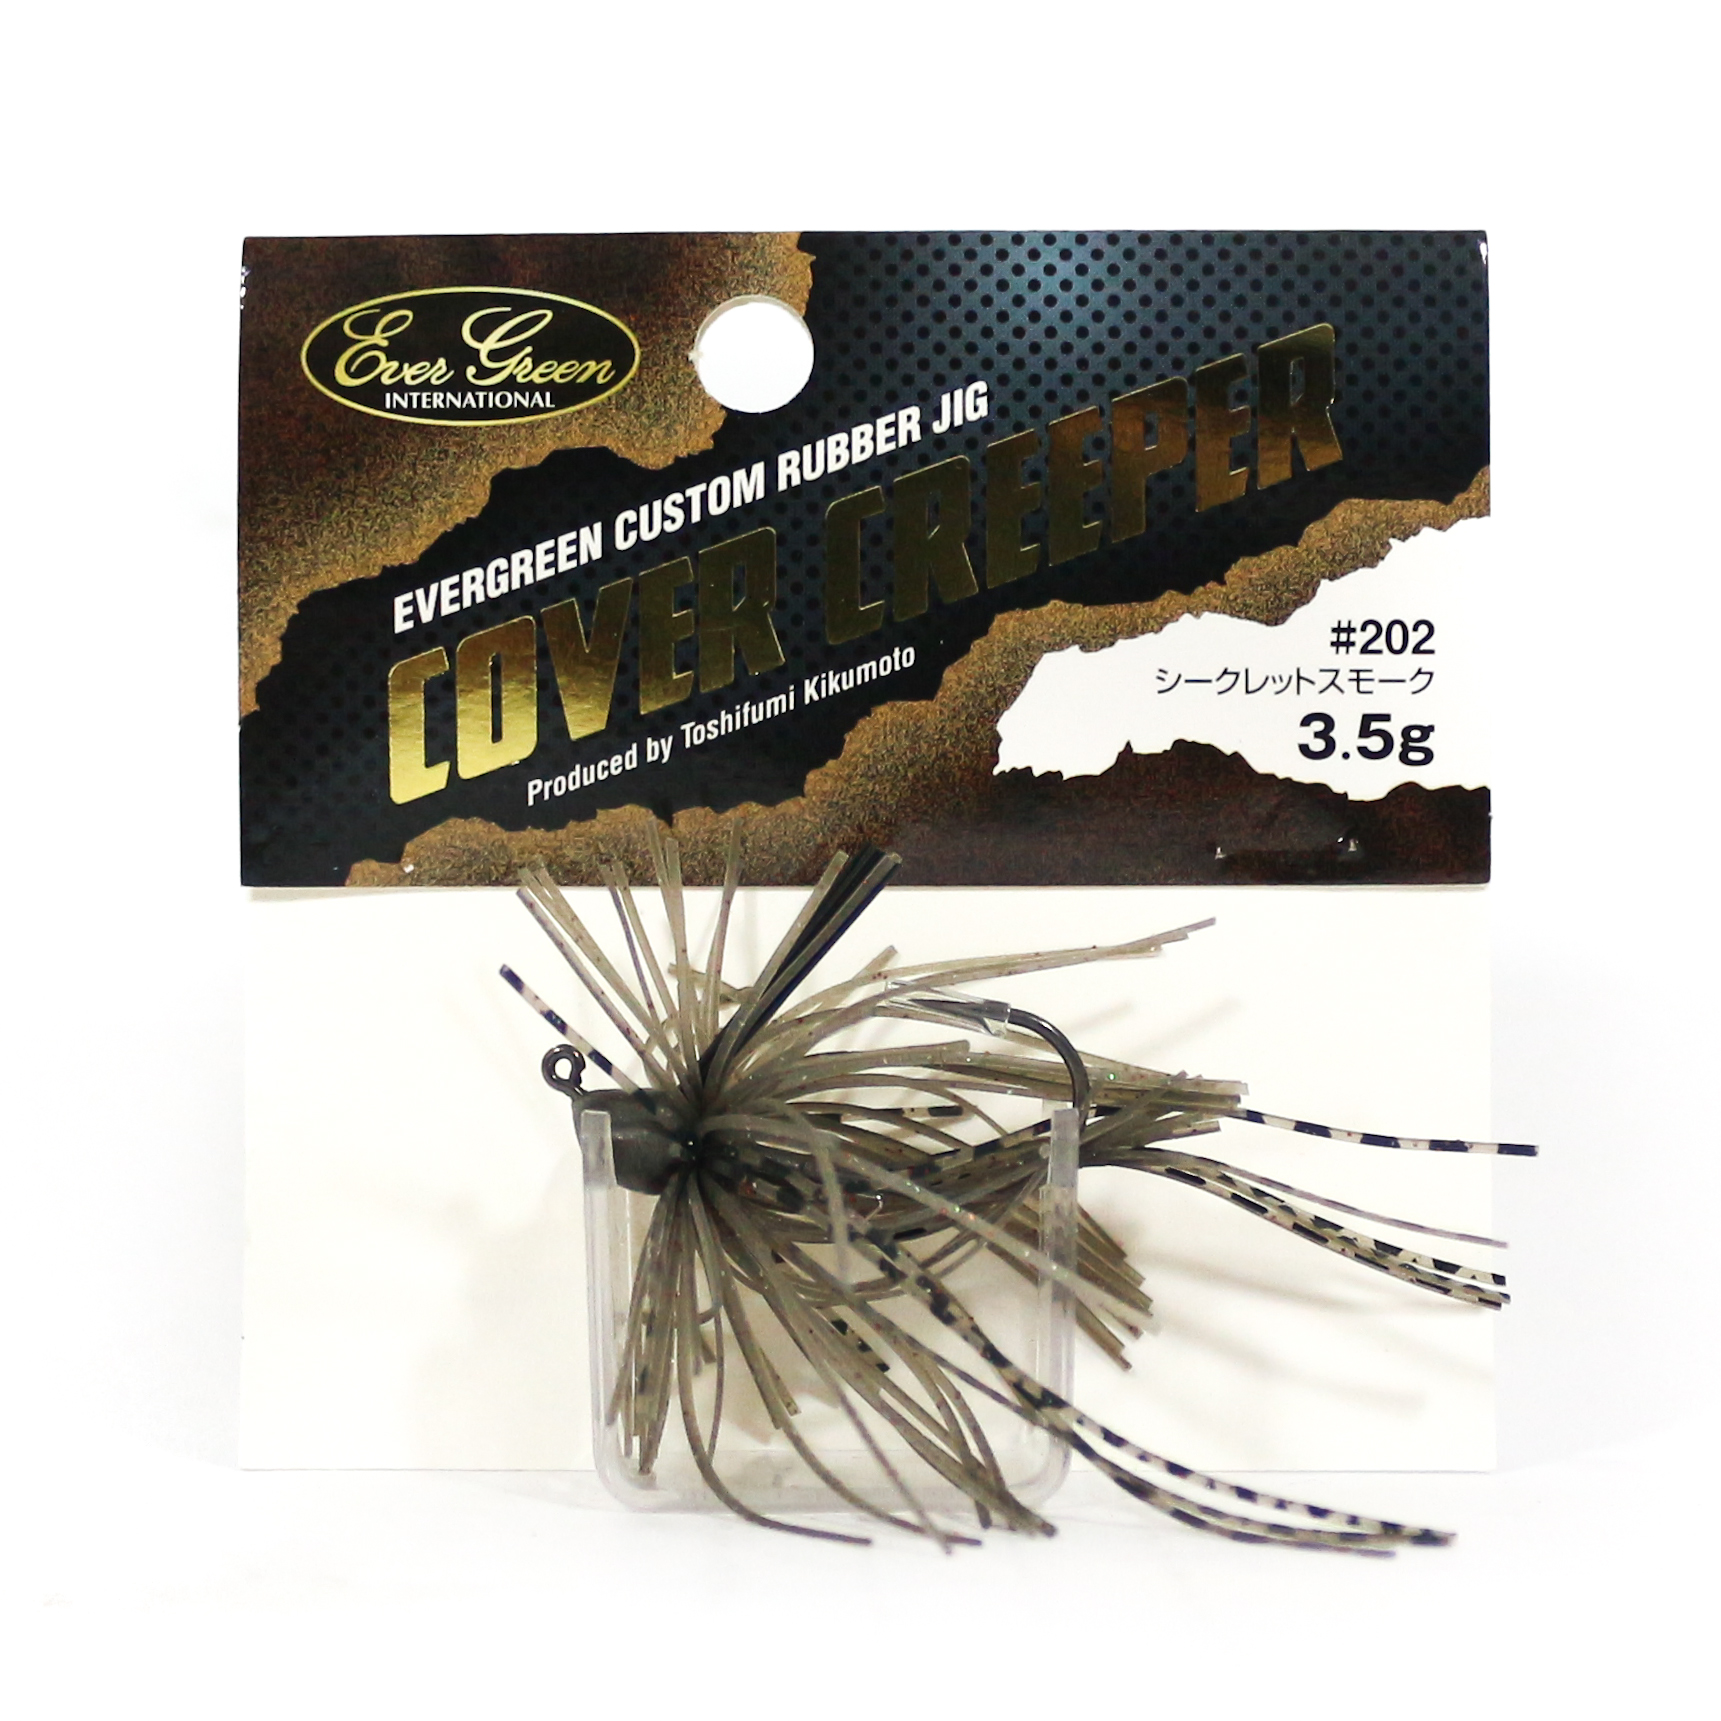 Evergreen Rubber Jig Cover Creeper 3.5g Sinking Lure 202 (3429)